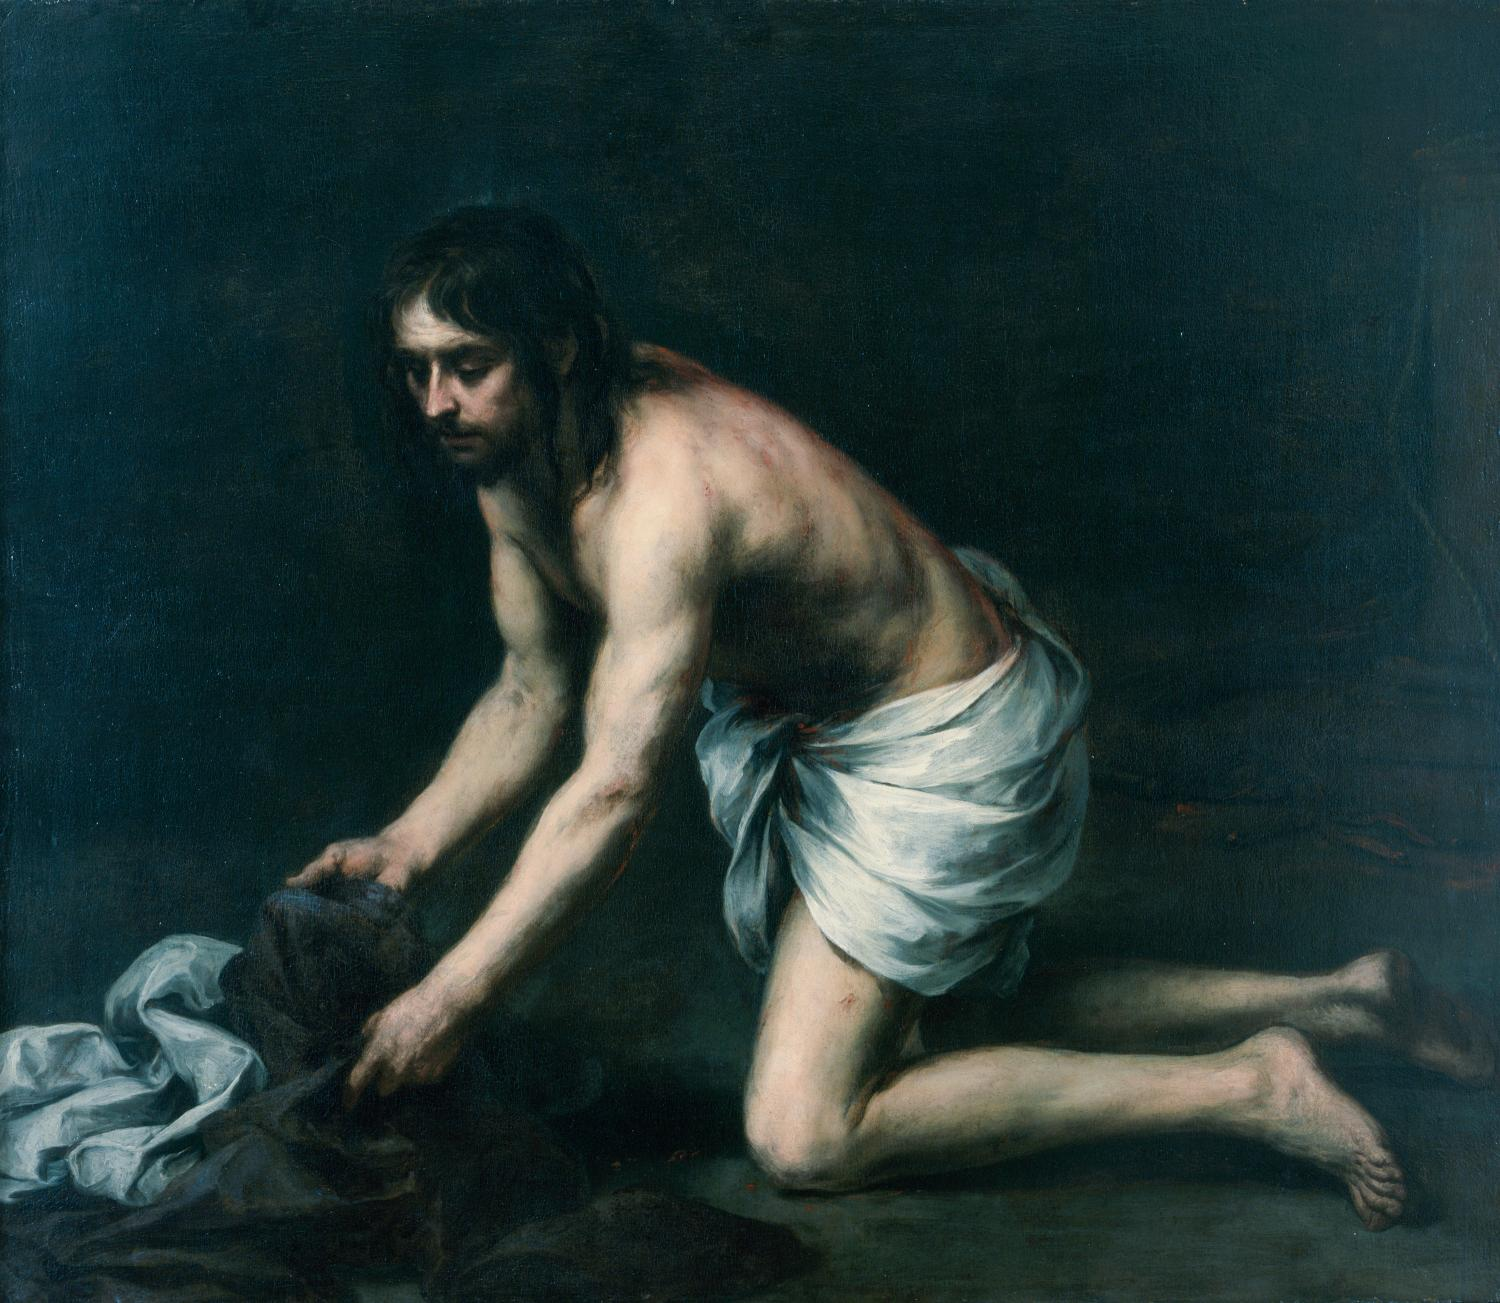 Bartolomé Esteban Murillo, Christ after the Flagellation, ca. 1670. Oil on canvas. Gift of Ellnora D. Krannert 1960-4-1